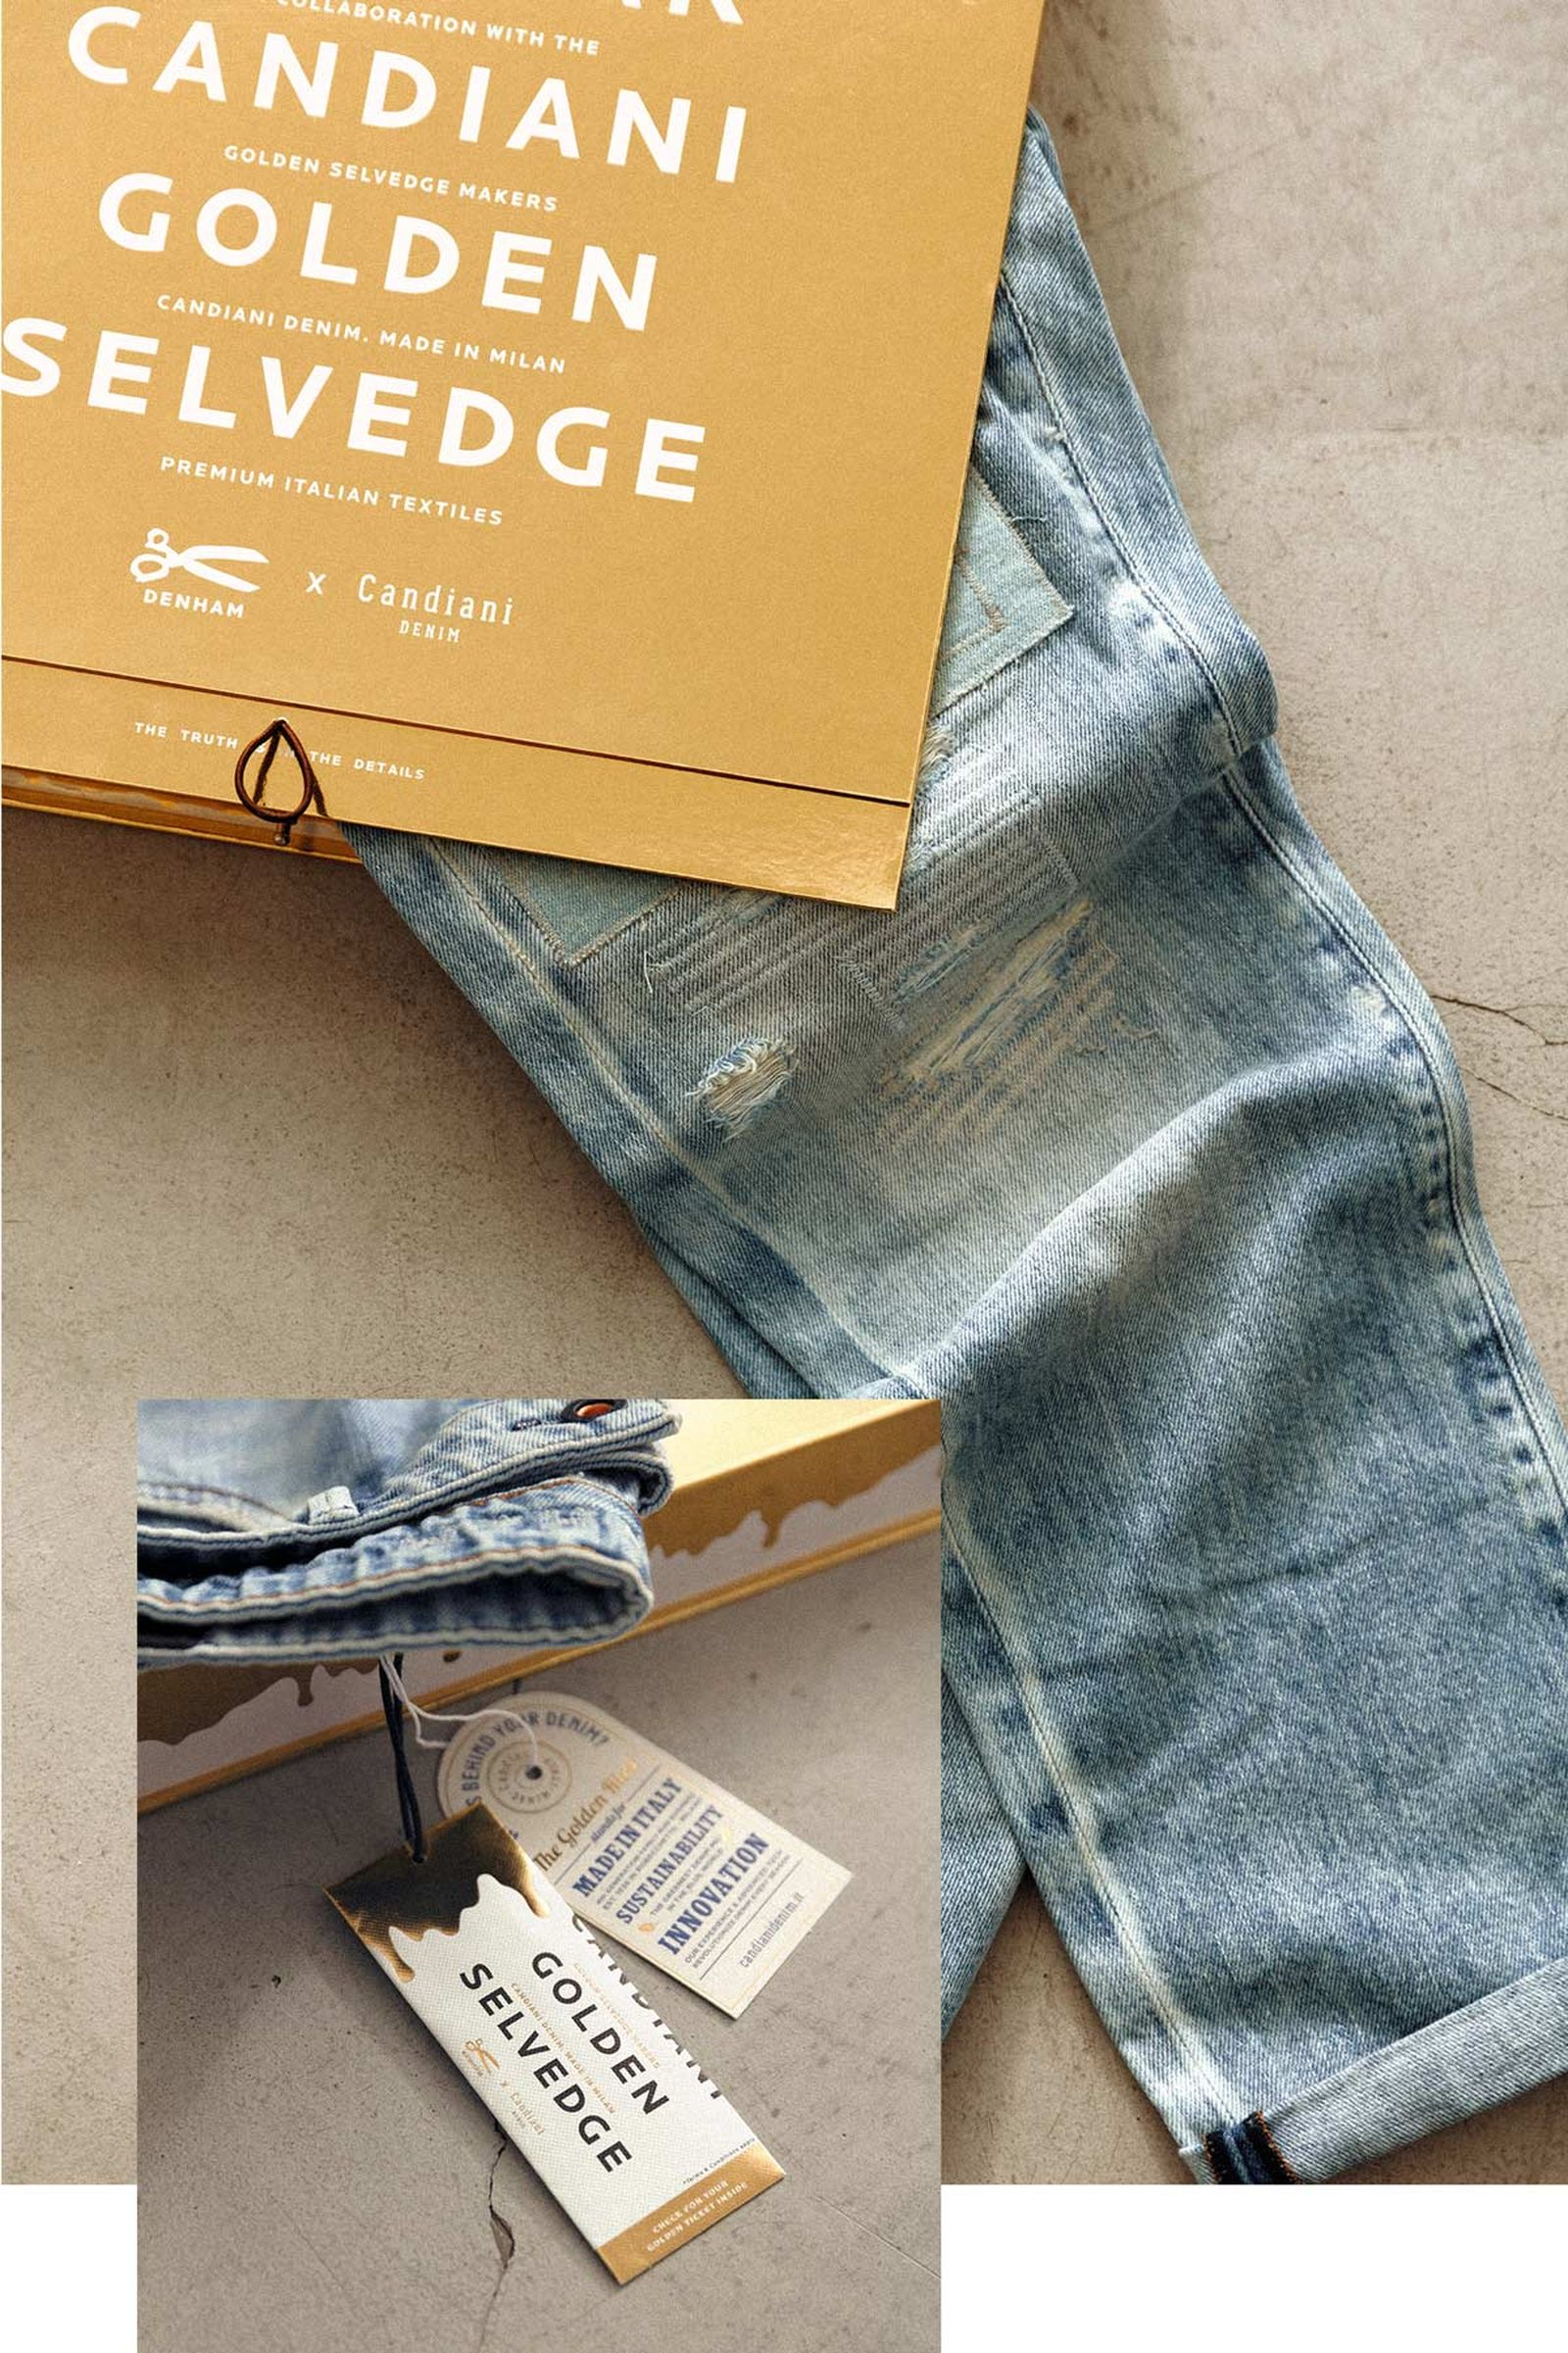 DENHAM x 10 Year Candiani Golden Selvedge & Candiani Golden Ticket